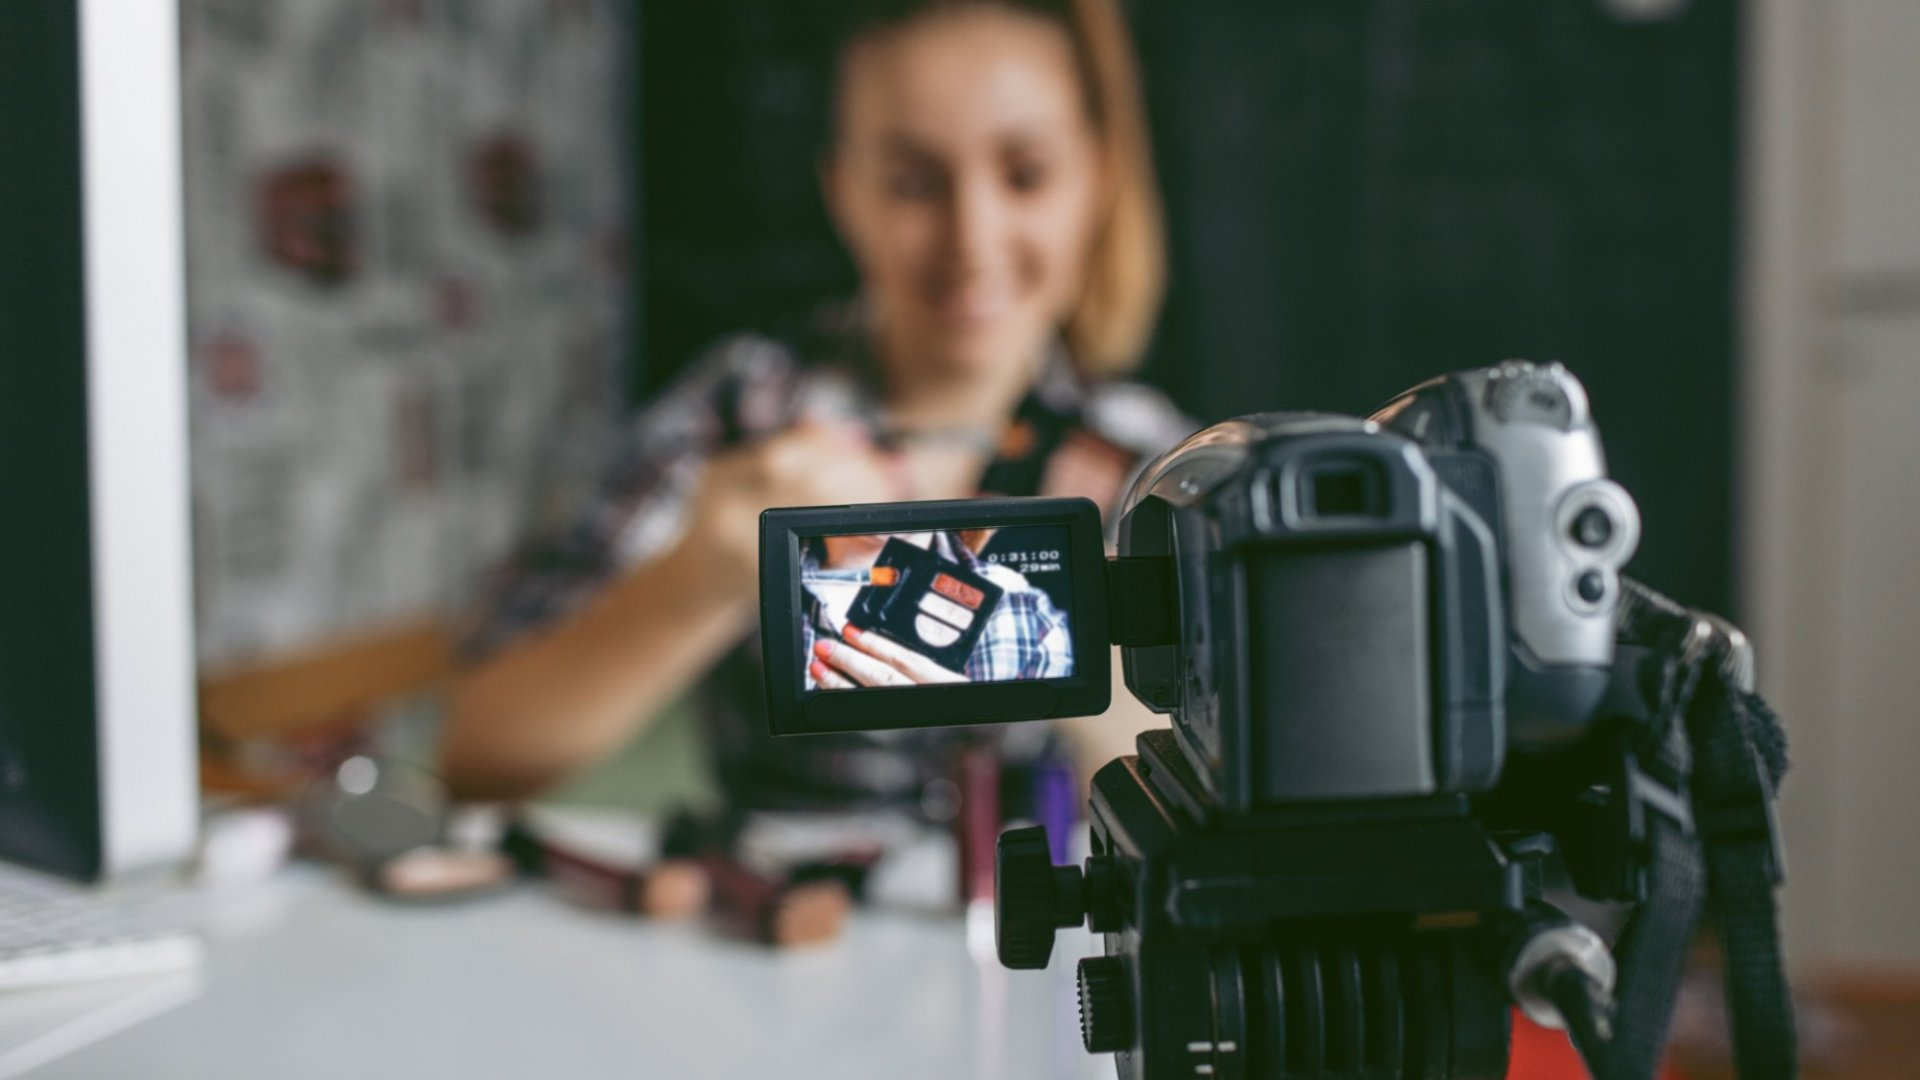 Consider outsourcing video marketing so you don't sacrifice quality.